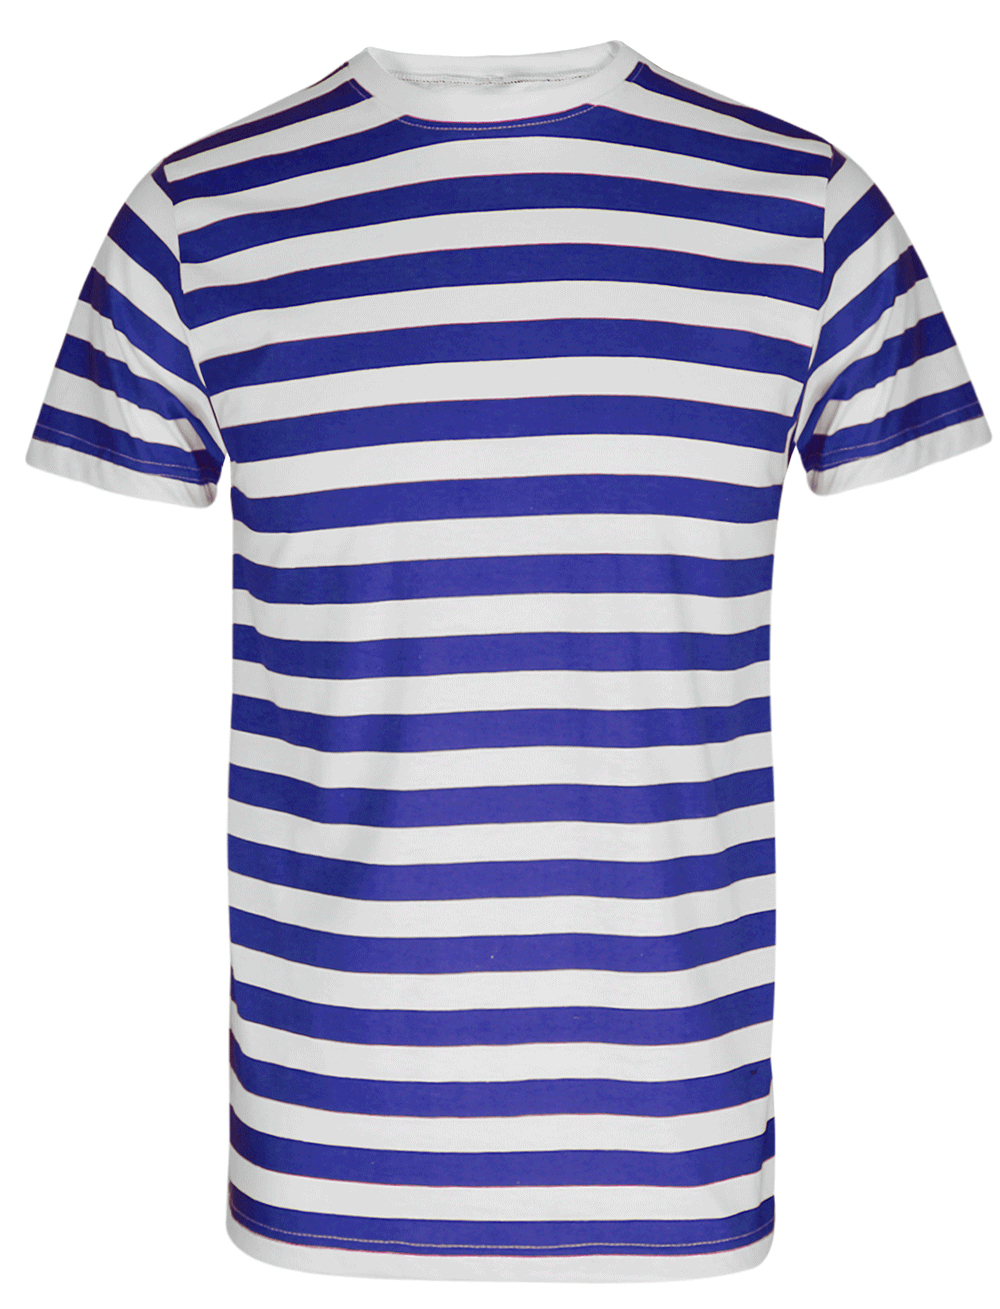 Men 39 s boys red and white striped t shirt top blue black for Red blue striped shirt